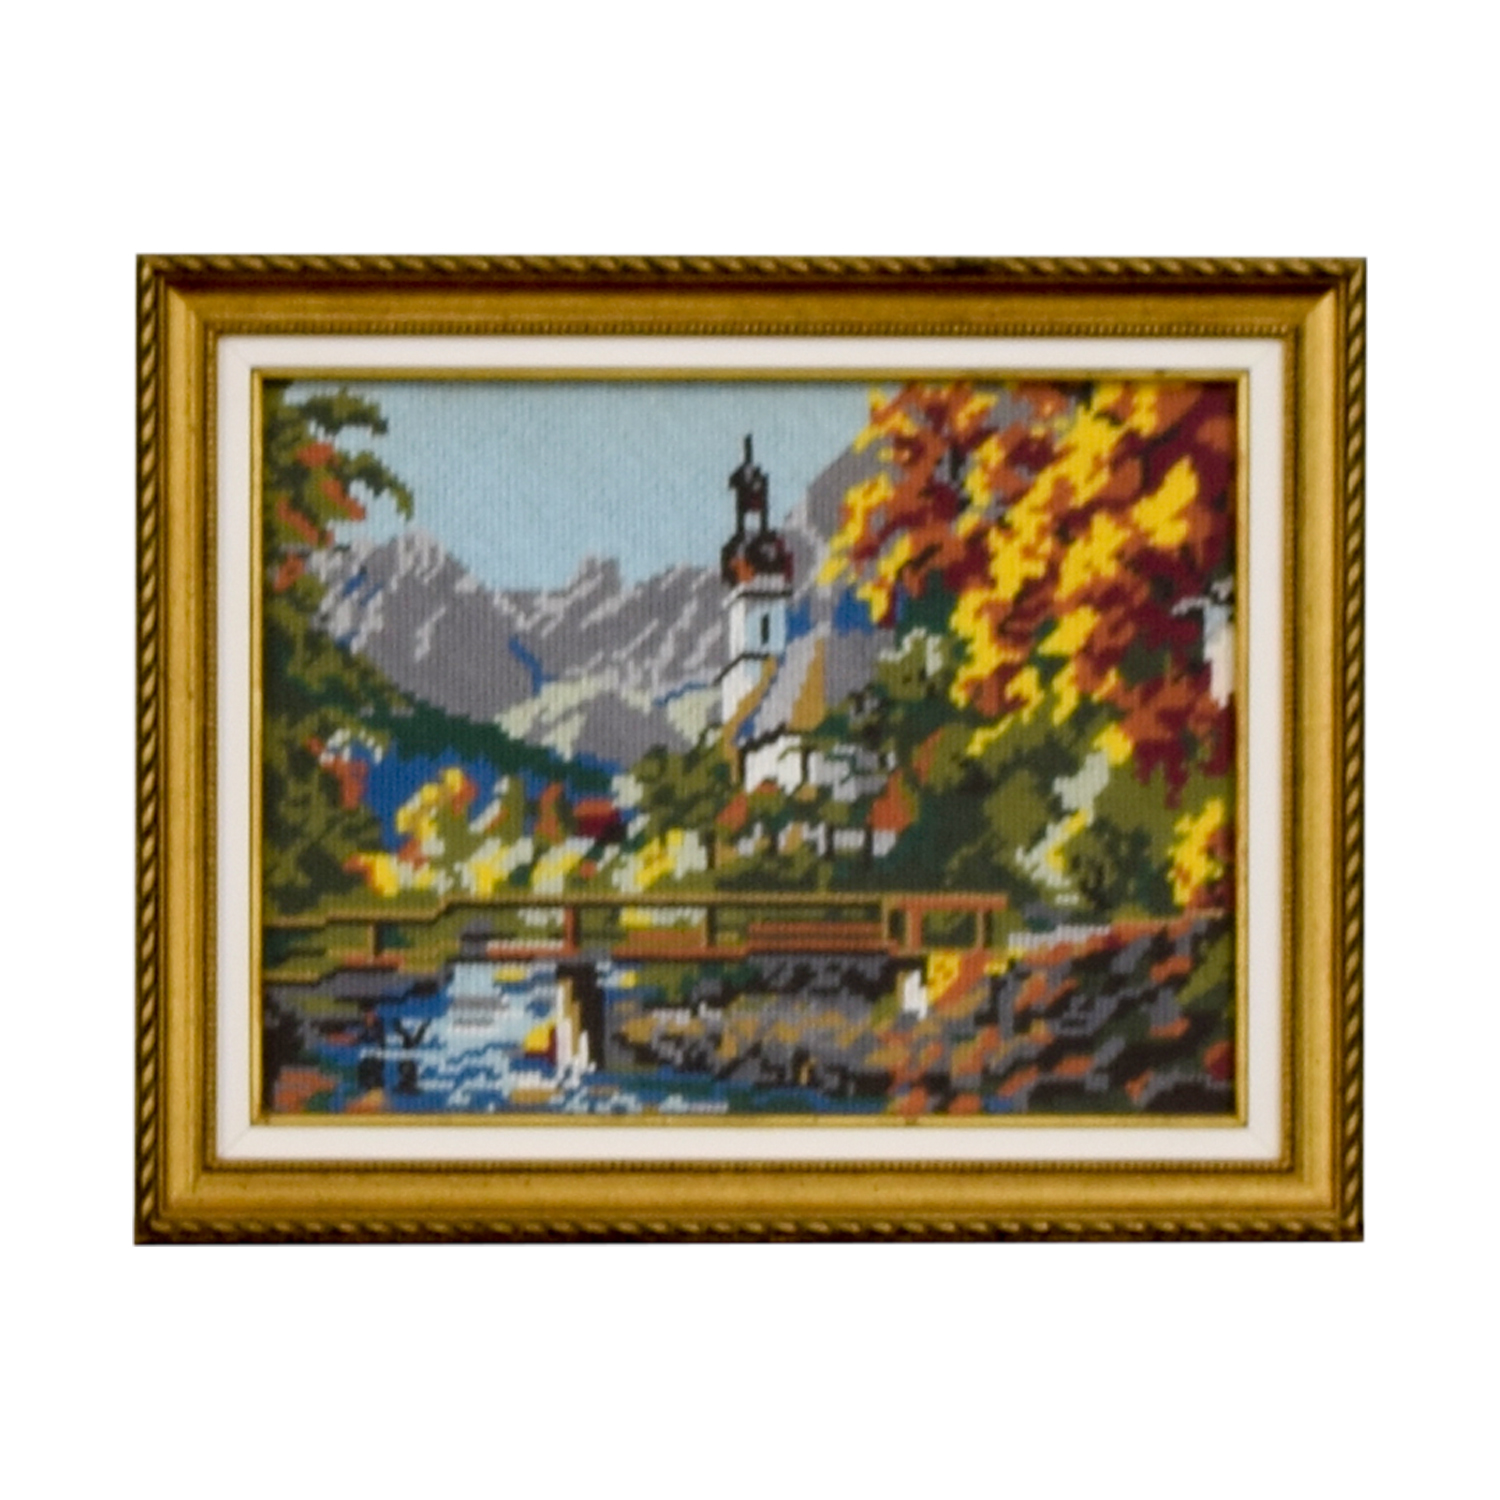 Framed Switzerland Church Bridge Needlepoint price